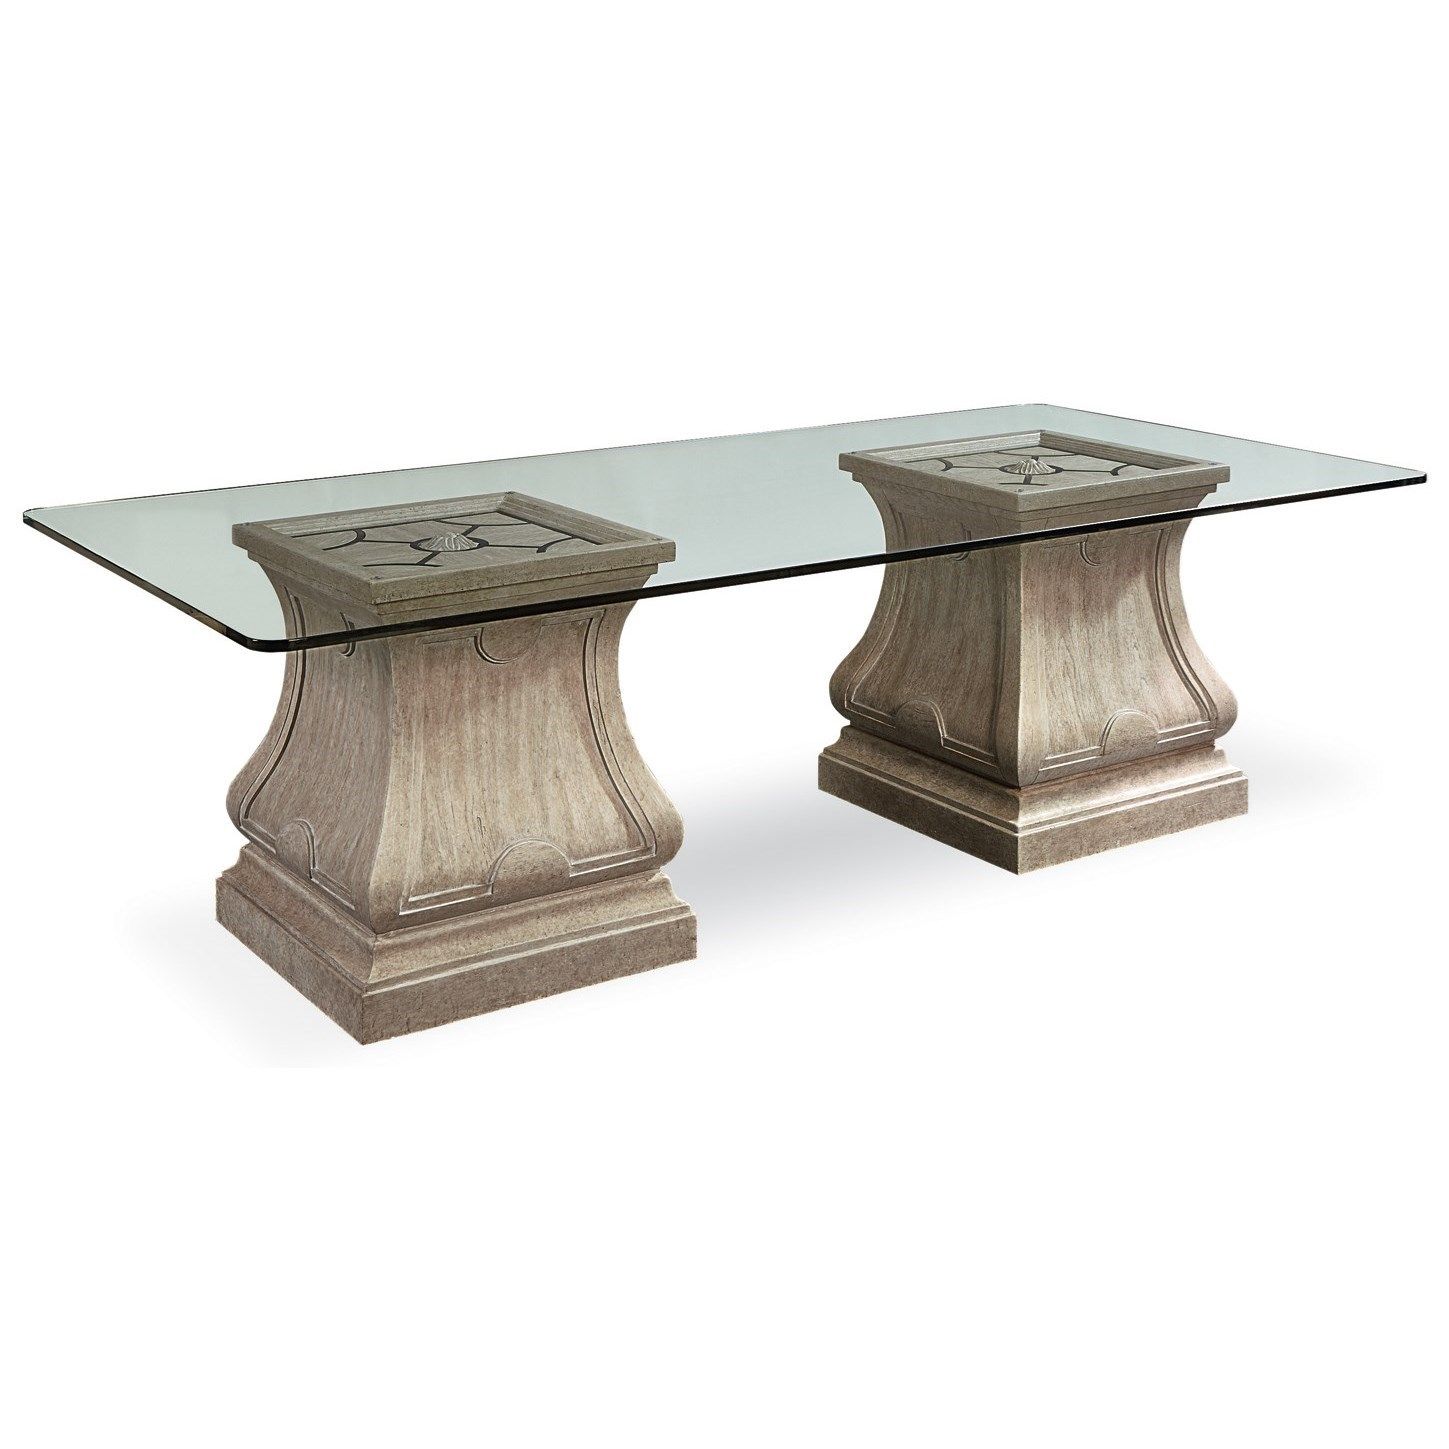 A.R.T. Furniture Inc Arch Salvage Leoni Rectangular Dining Table - Item Number: 233232-2802